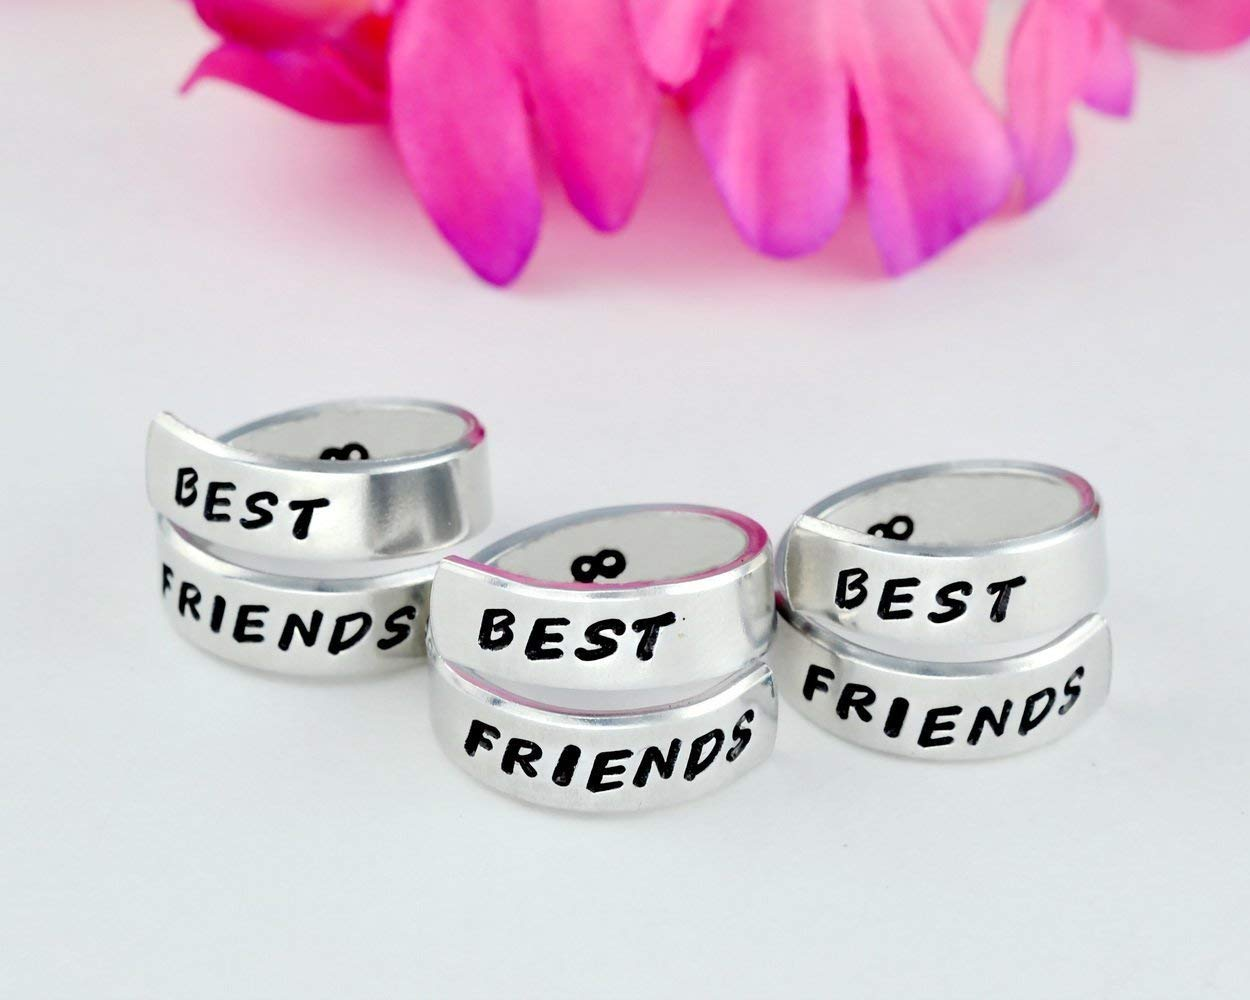 Forever Friends Personalized Gift Sorority Sisters Besties Friendship Wrap Rings Best Friends BFF Hand Stamped Aluminum Spiral Rings Set of 2